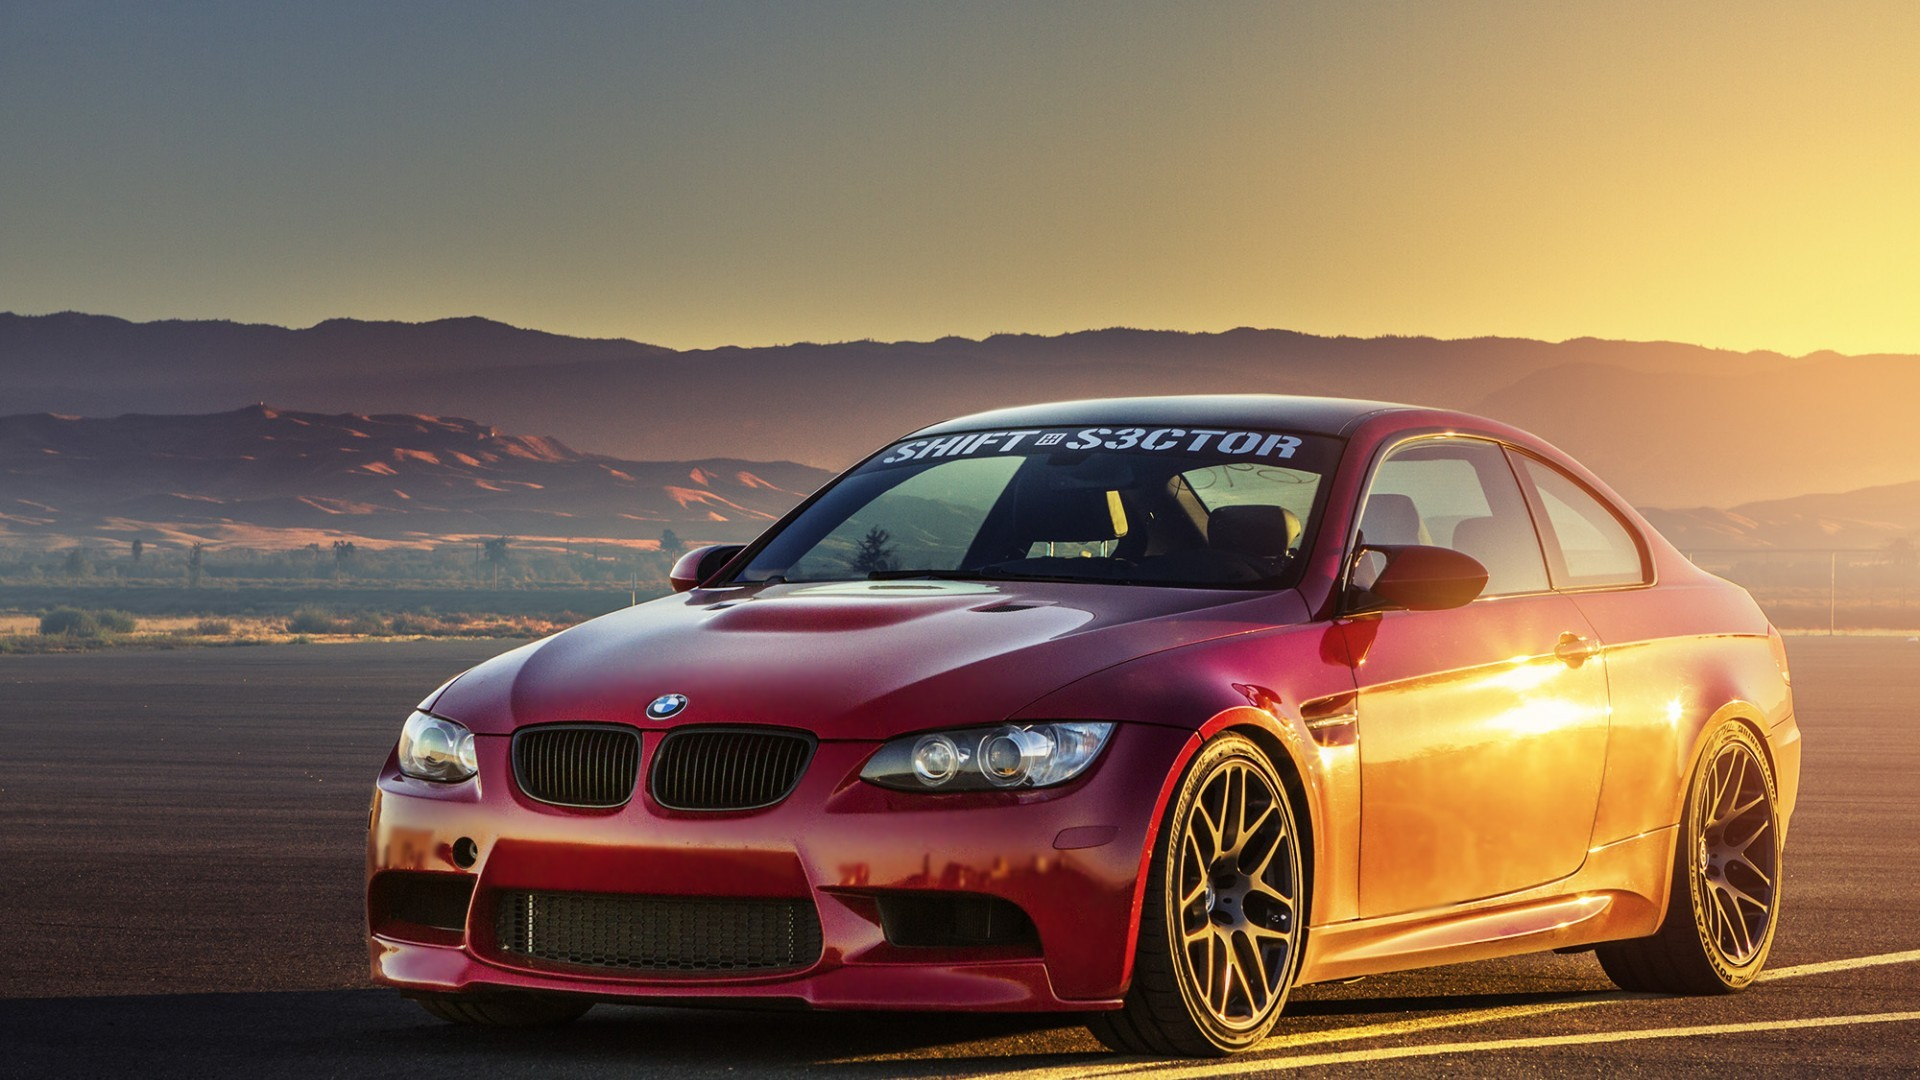 Desktop Corvett Car Wallpaper Herunterladen 1920x1080 Full Hd Hintergrundbilder Bmw M3